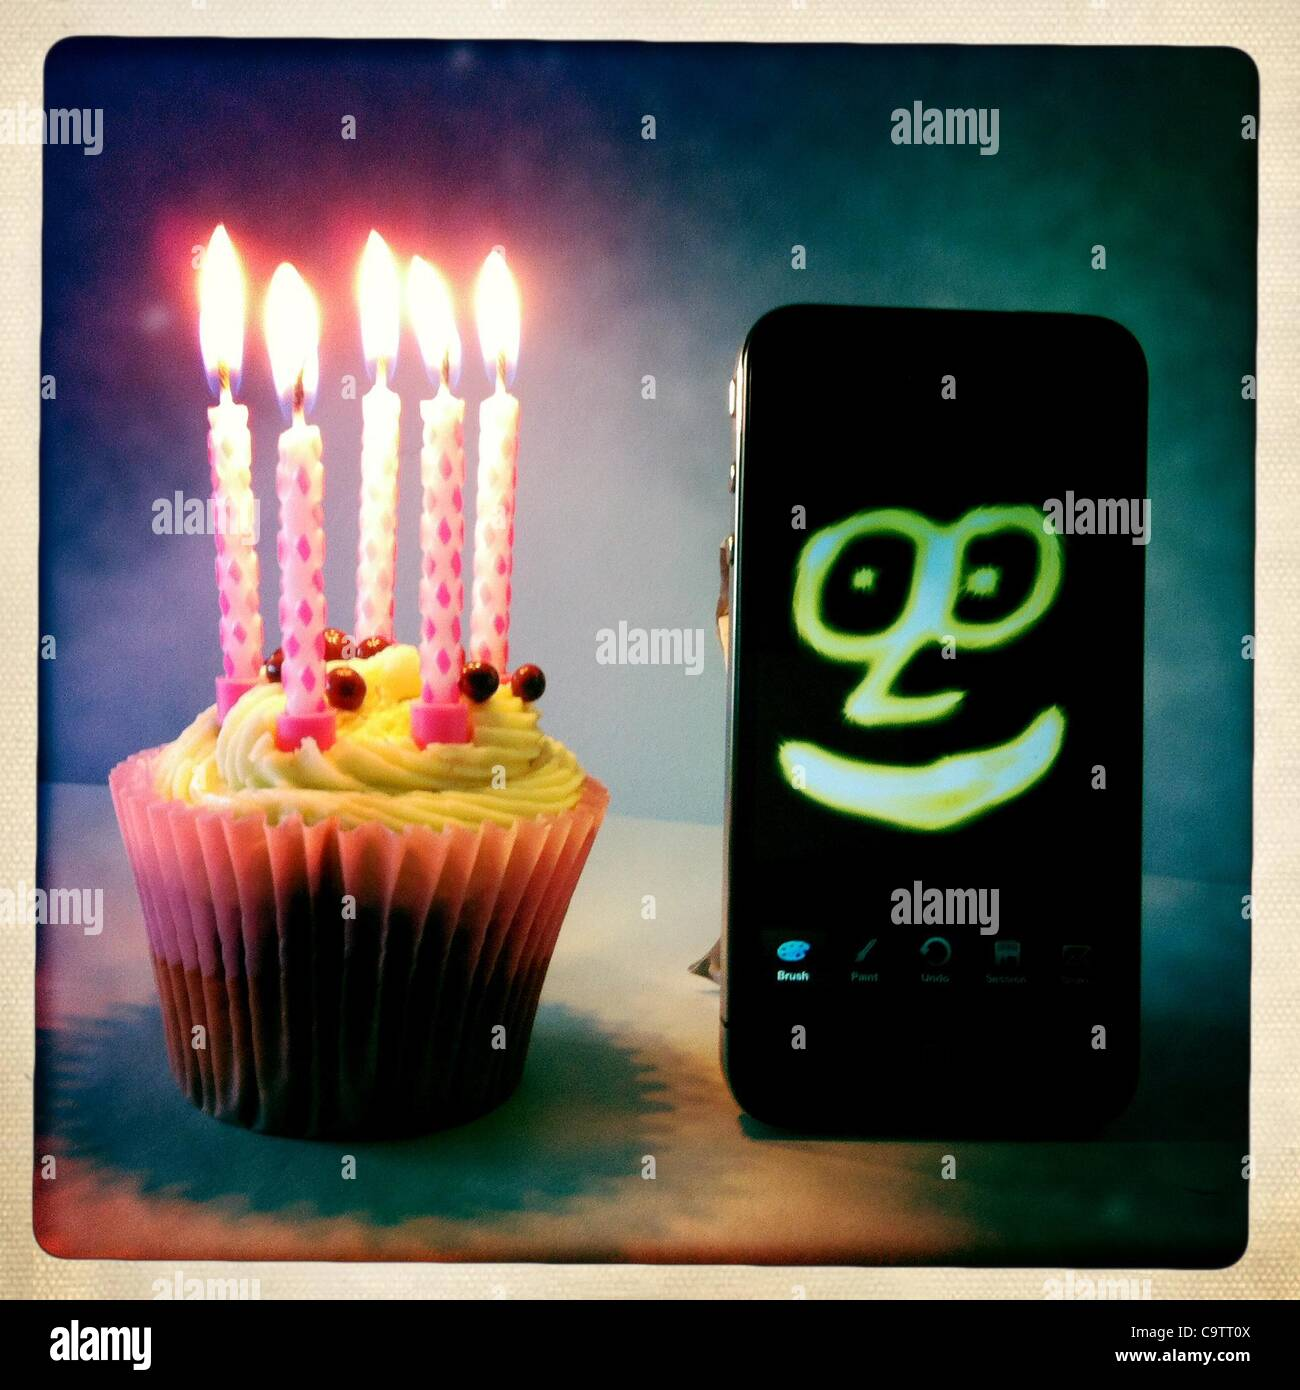 Feb. 20, 2012 - London, UK - iPhone's 5th birthday.The first iPhone was unveiled by Steve Jobs, then CEO of - Stock Image